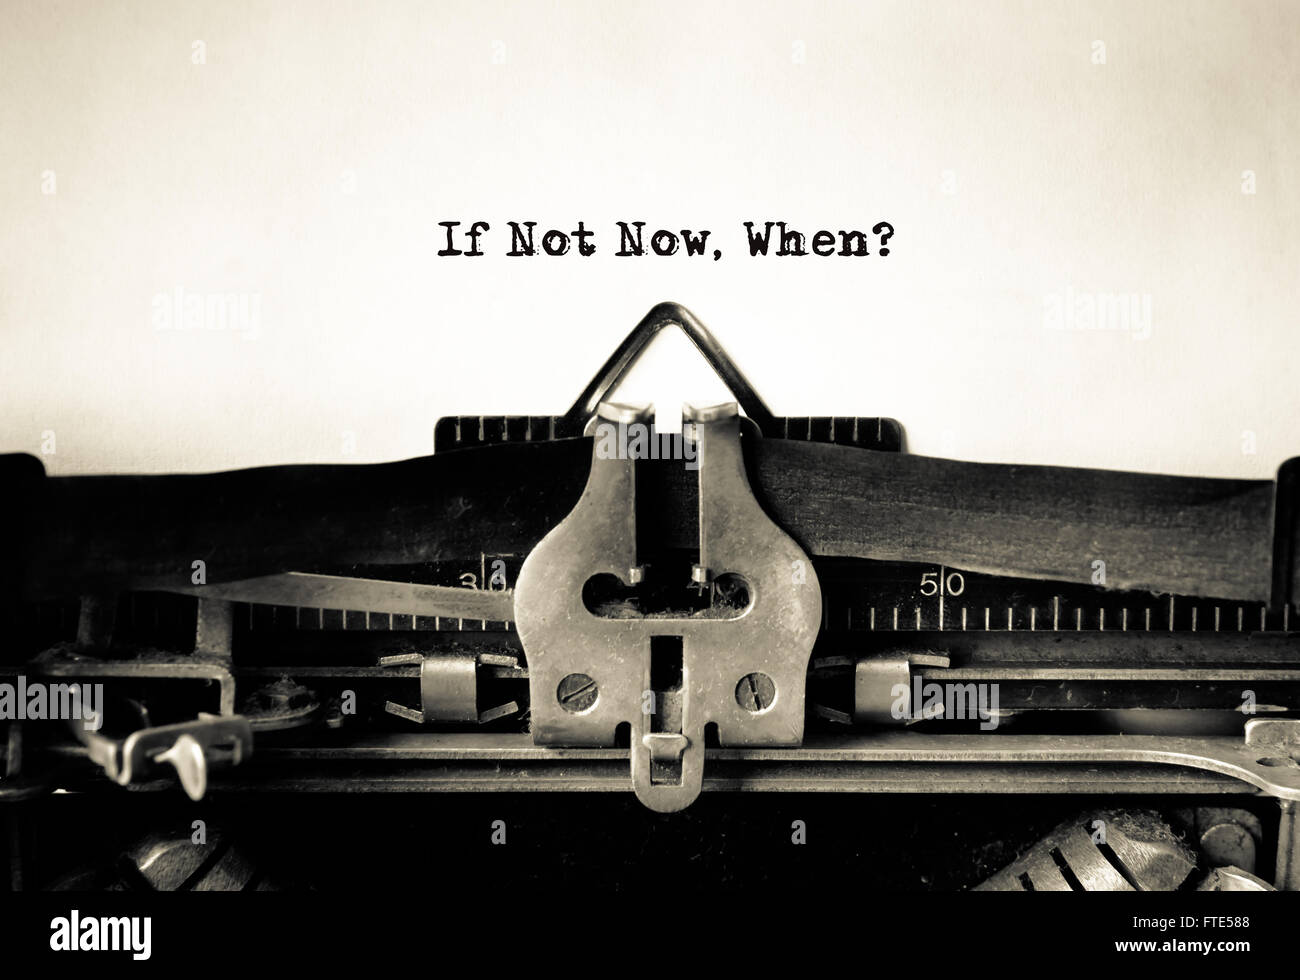 If Not Now, When Inspirational message typed on vintage typewriter Stock Photo